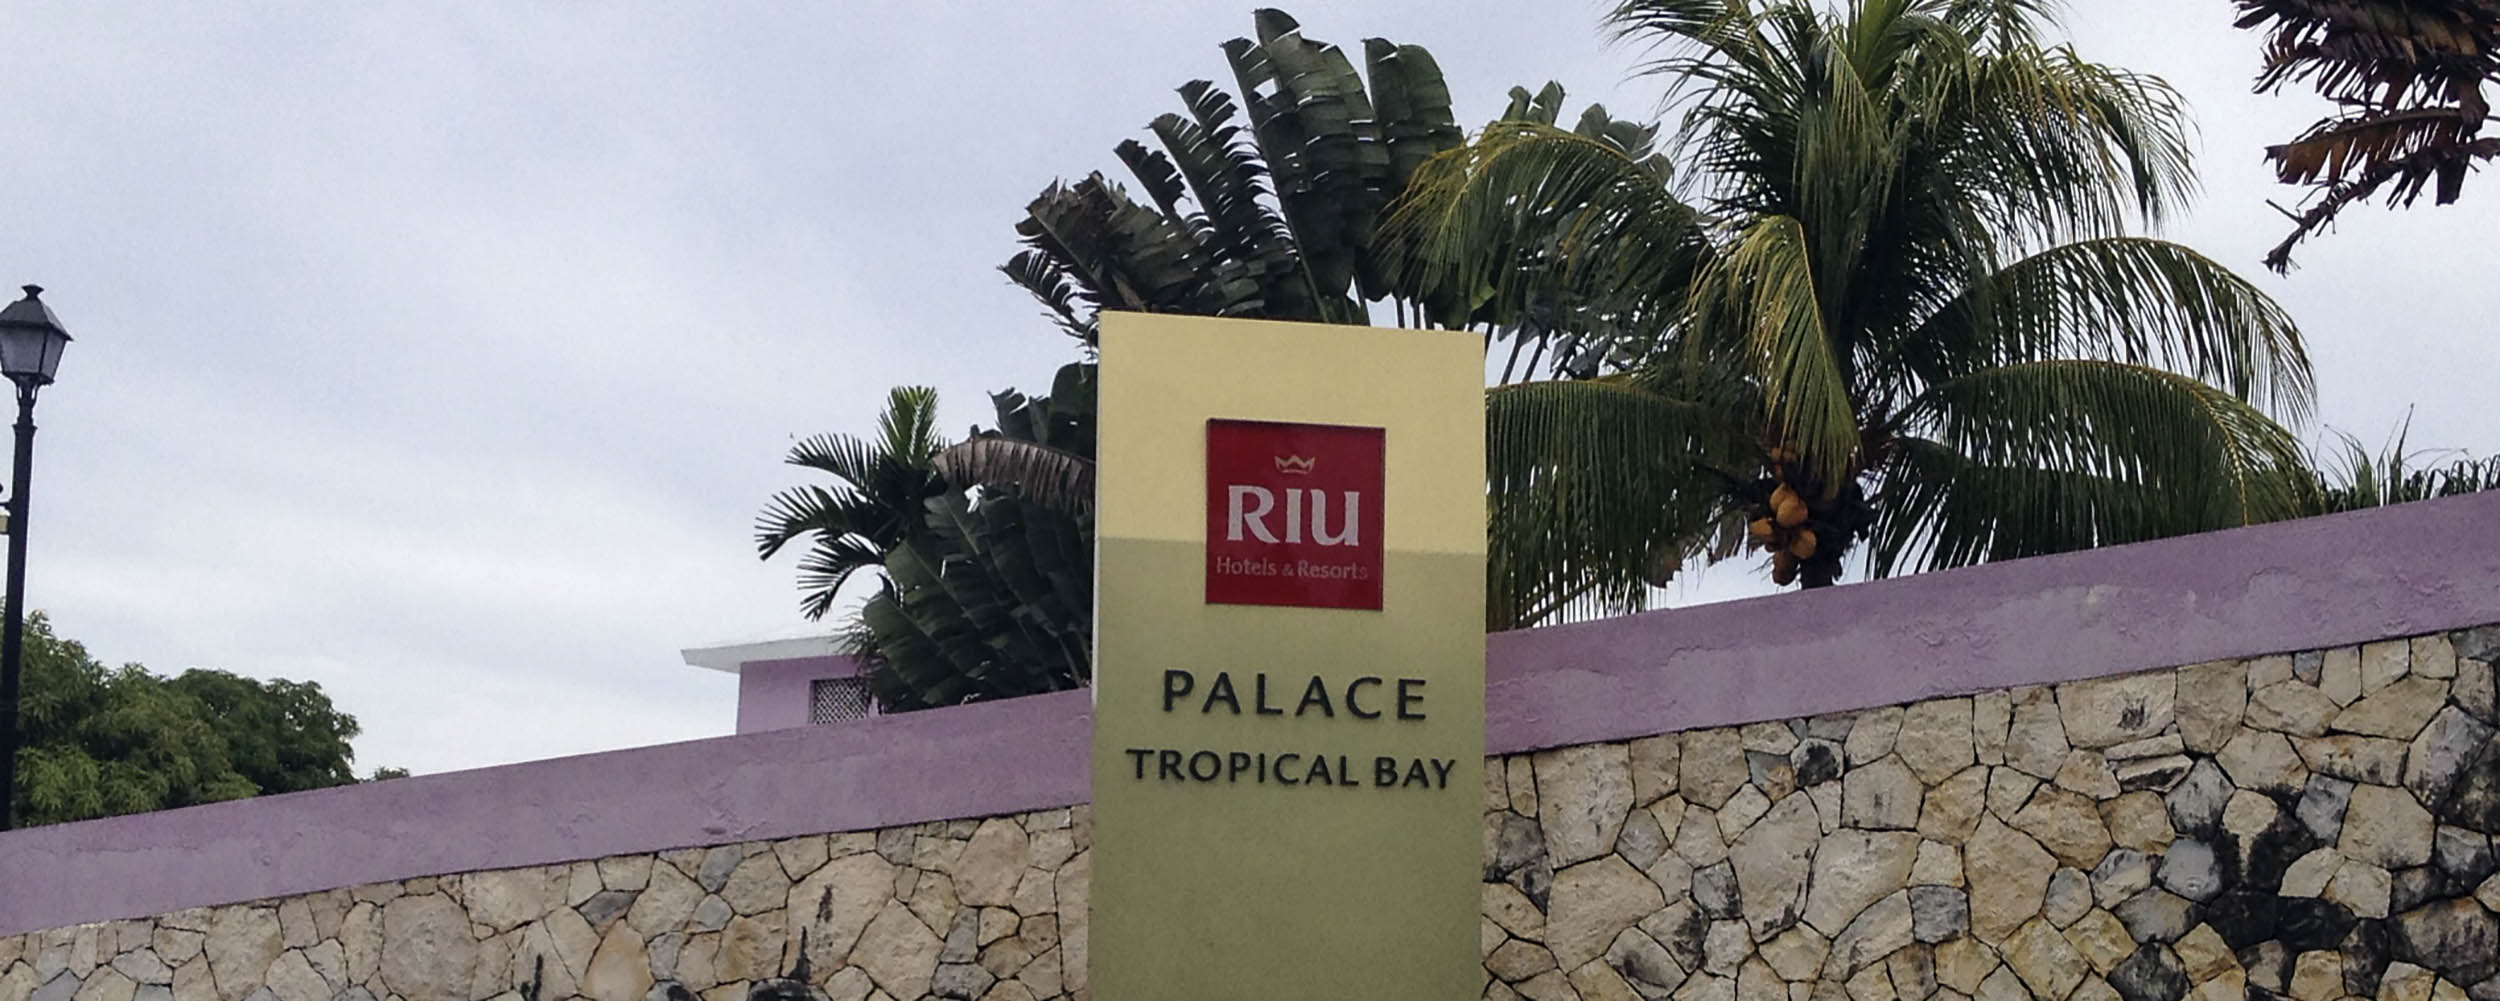 Palace Tropical Bay RIU - Negril Jamaica